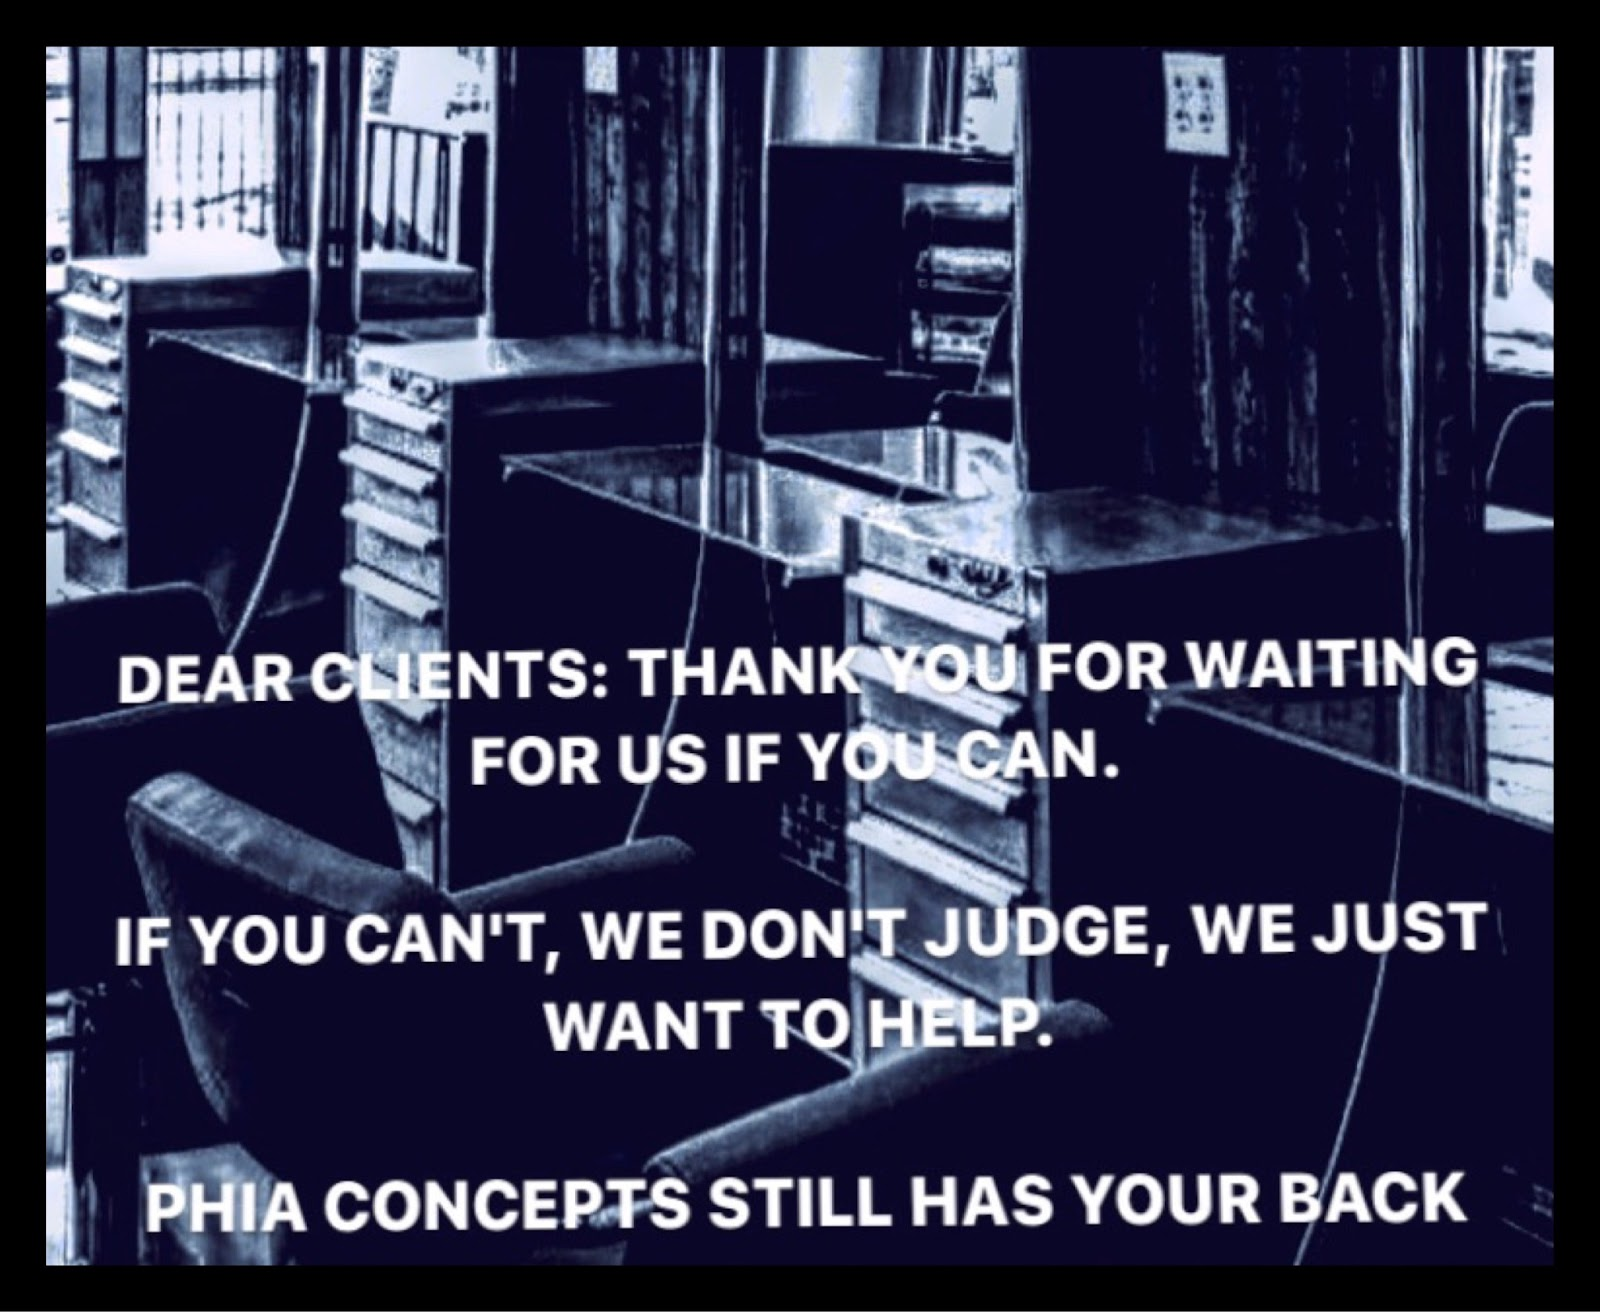 """""""Dear clients: thank you for waiting for us if you can. If you can't understand, just don't ride solo. Phia concepts still has your back."""""""